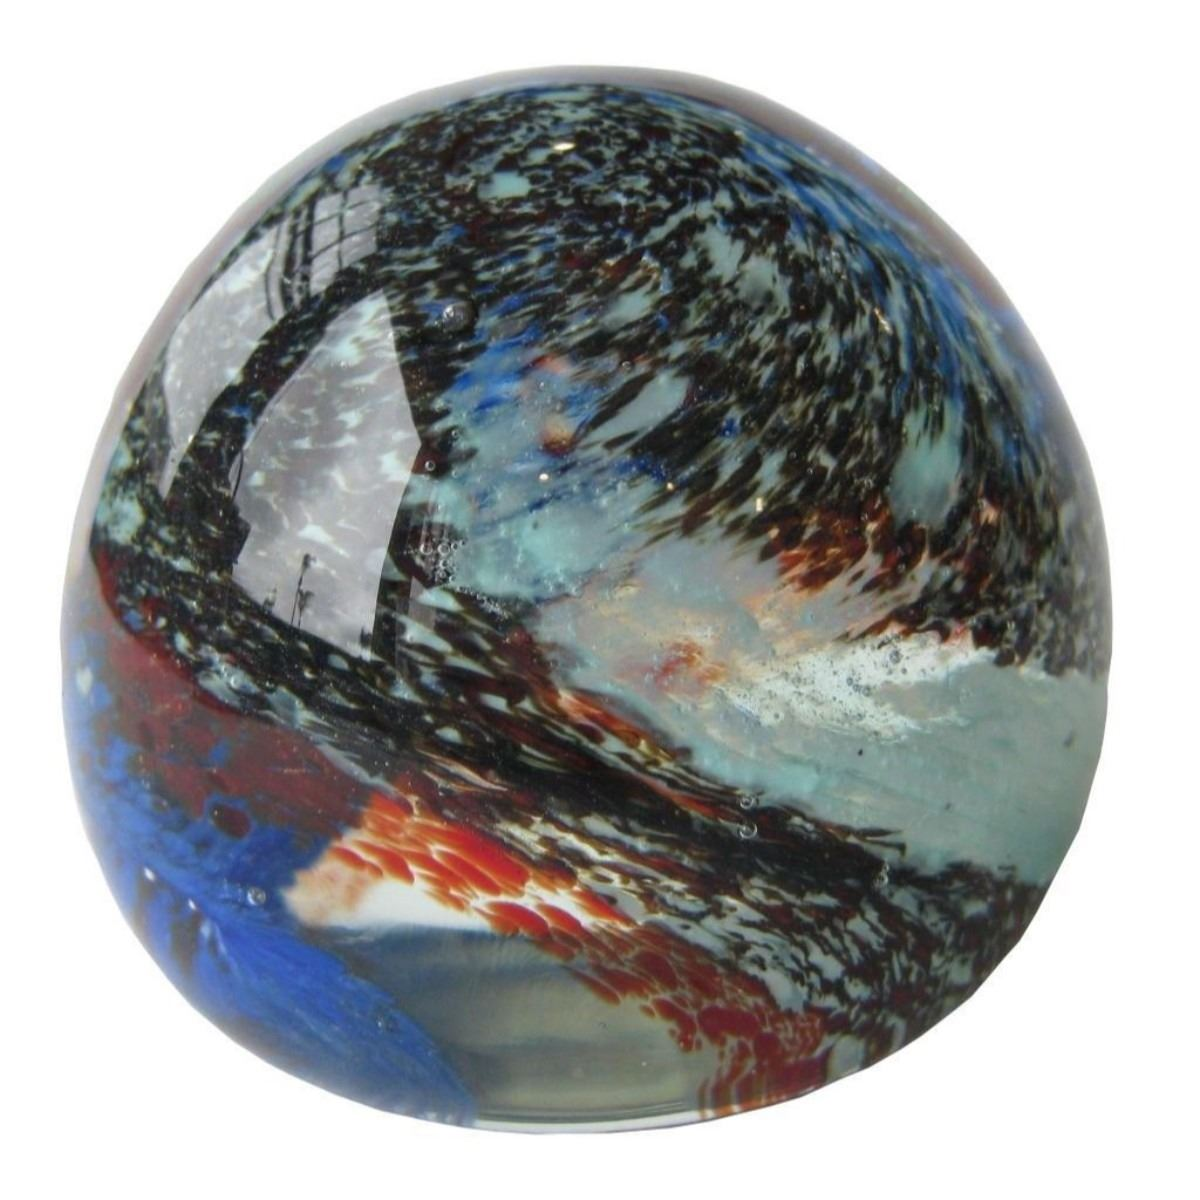 Murano glass paperweights dating